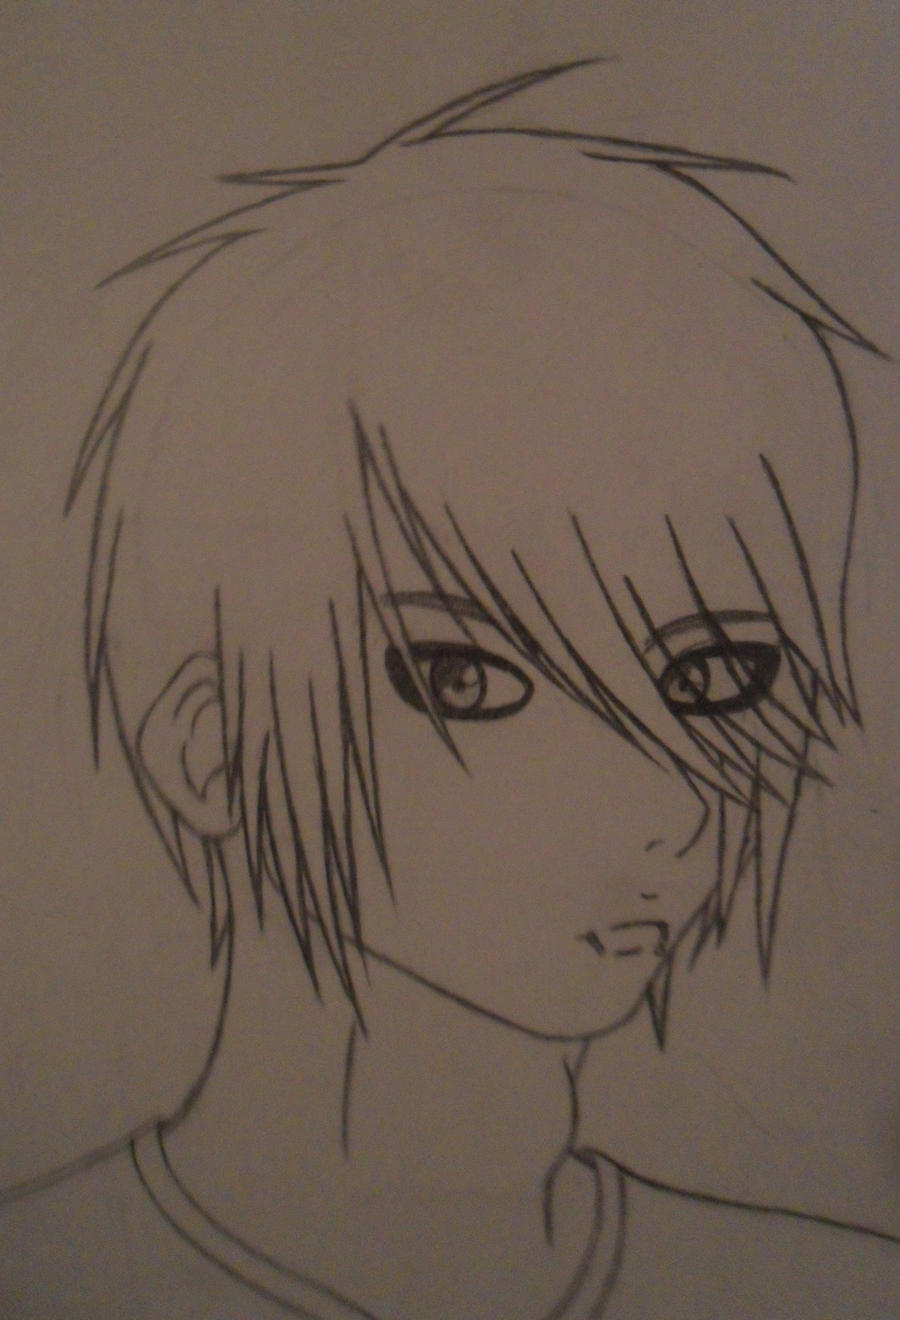 How to draw a simple emo face step 1 - How To Draw Anime Scene Girl Hair Emo Boy Drawing By Amiaice Emo Boy Drawing